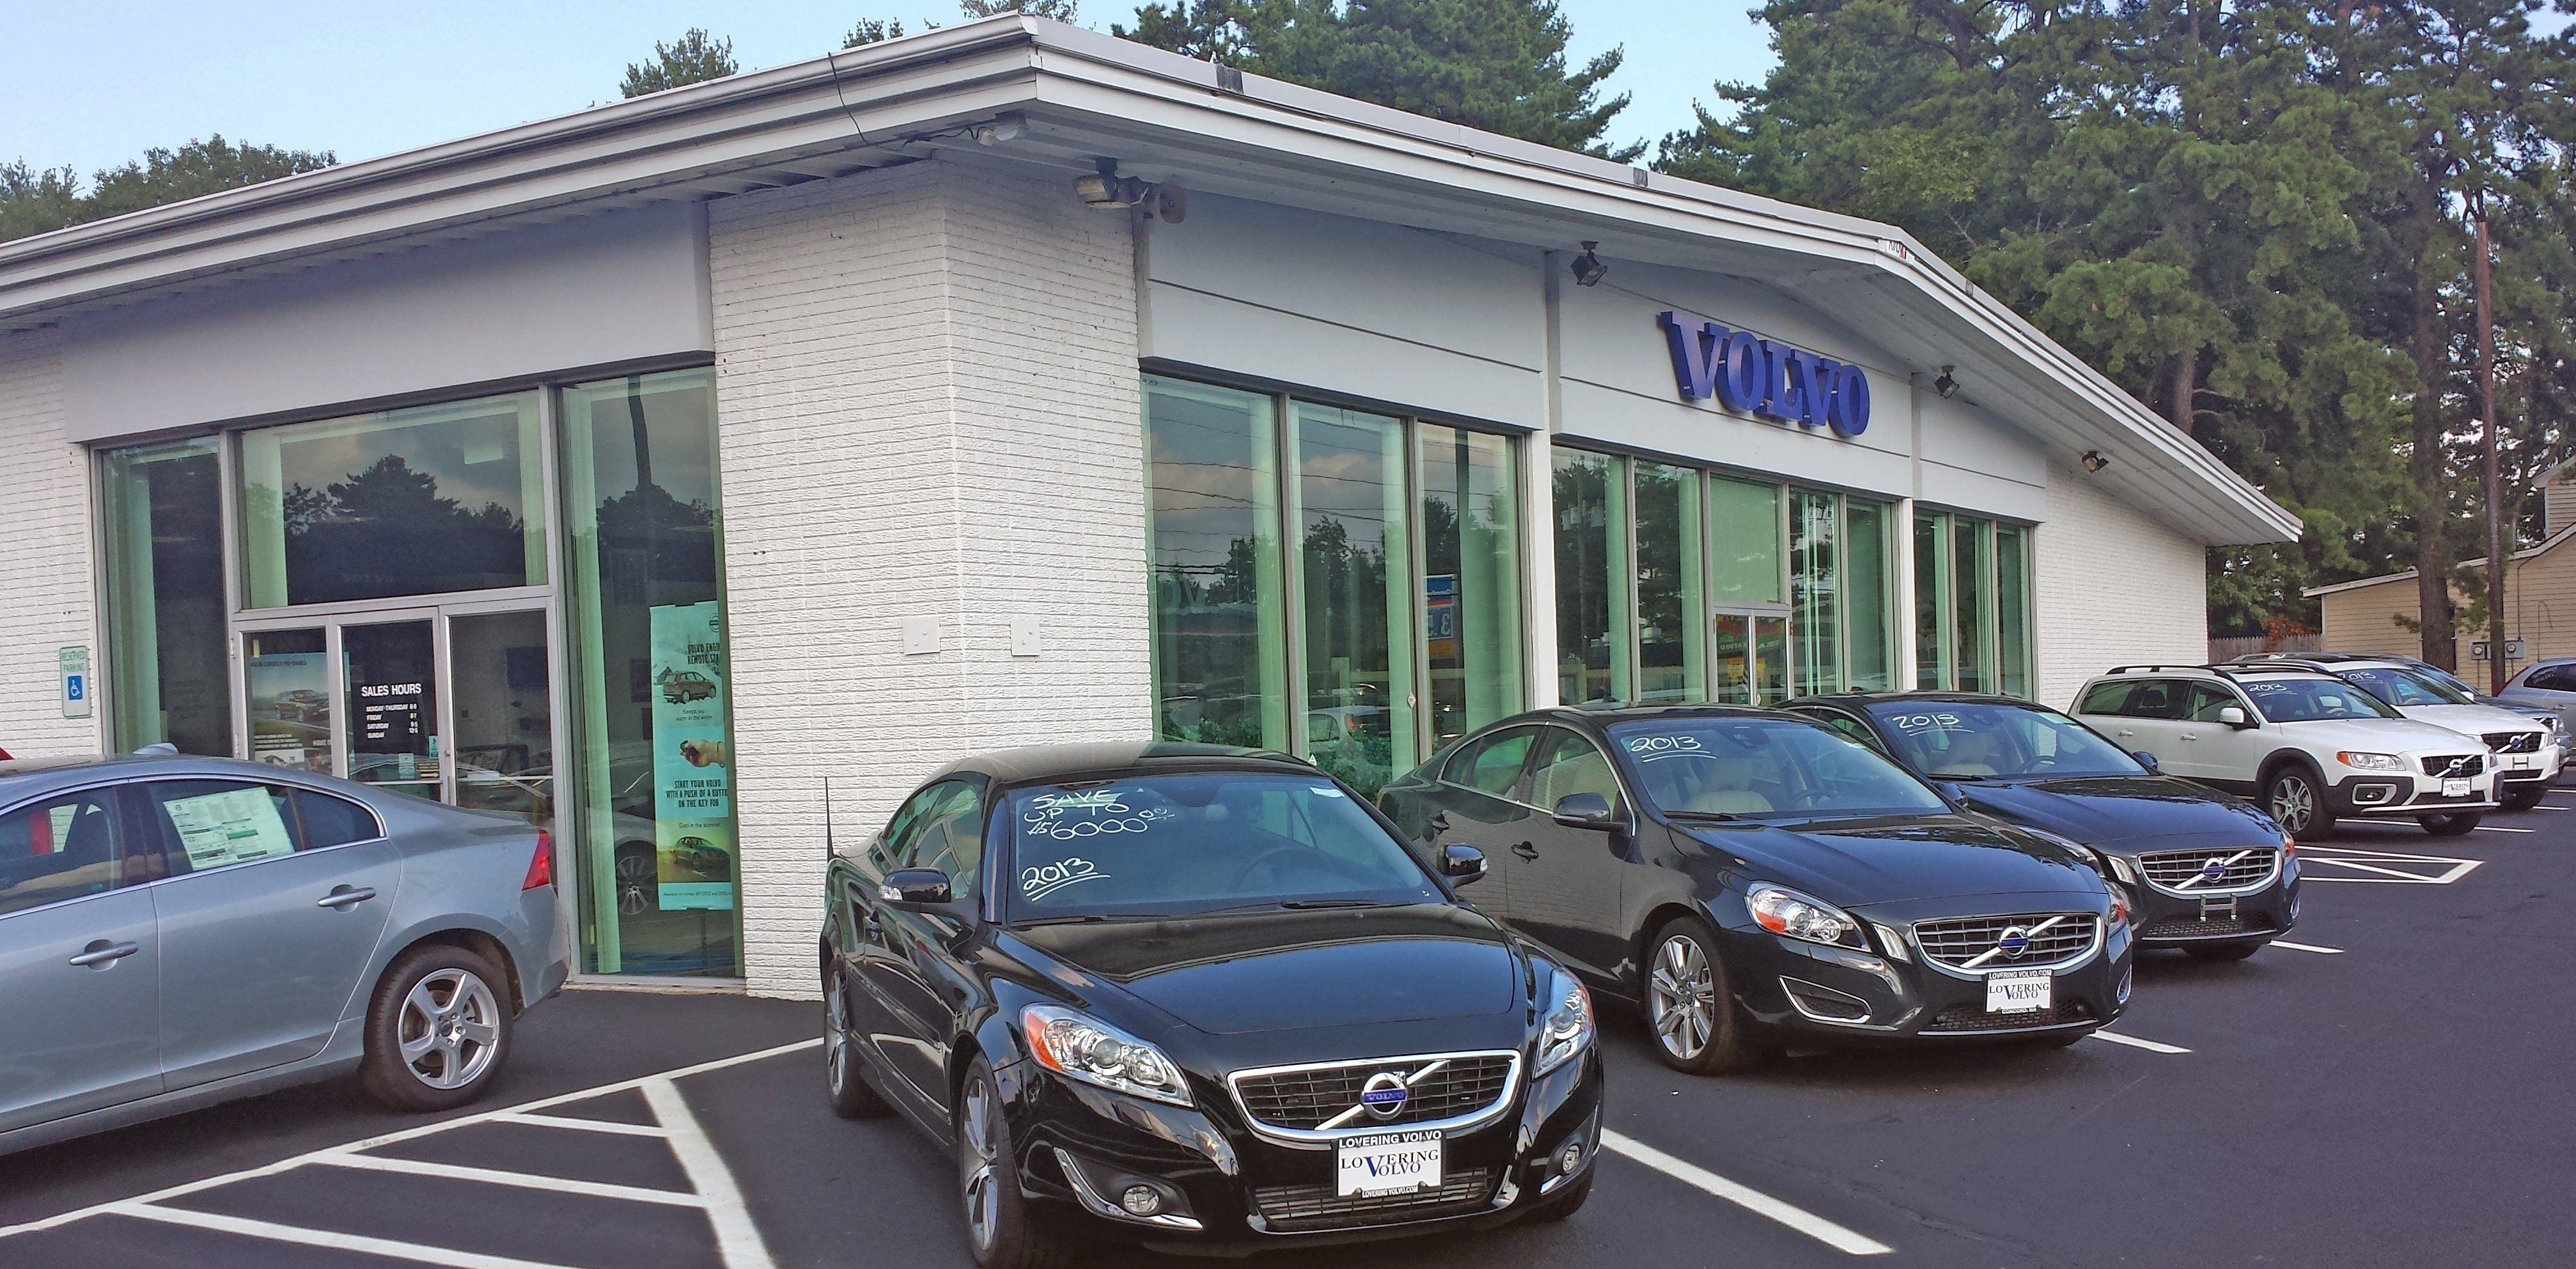 lovering volvo cars concord in concord nh 03301. Black Bedroom Furniture Sets. Home Design Ideas